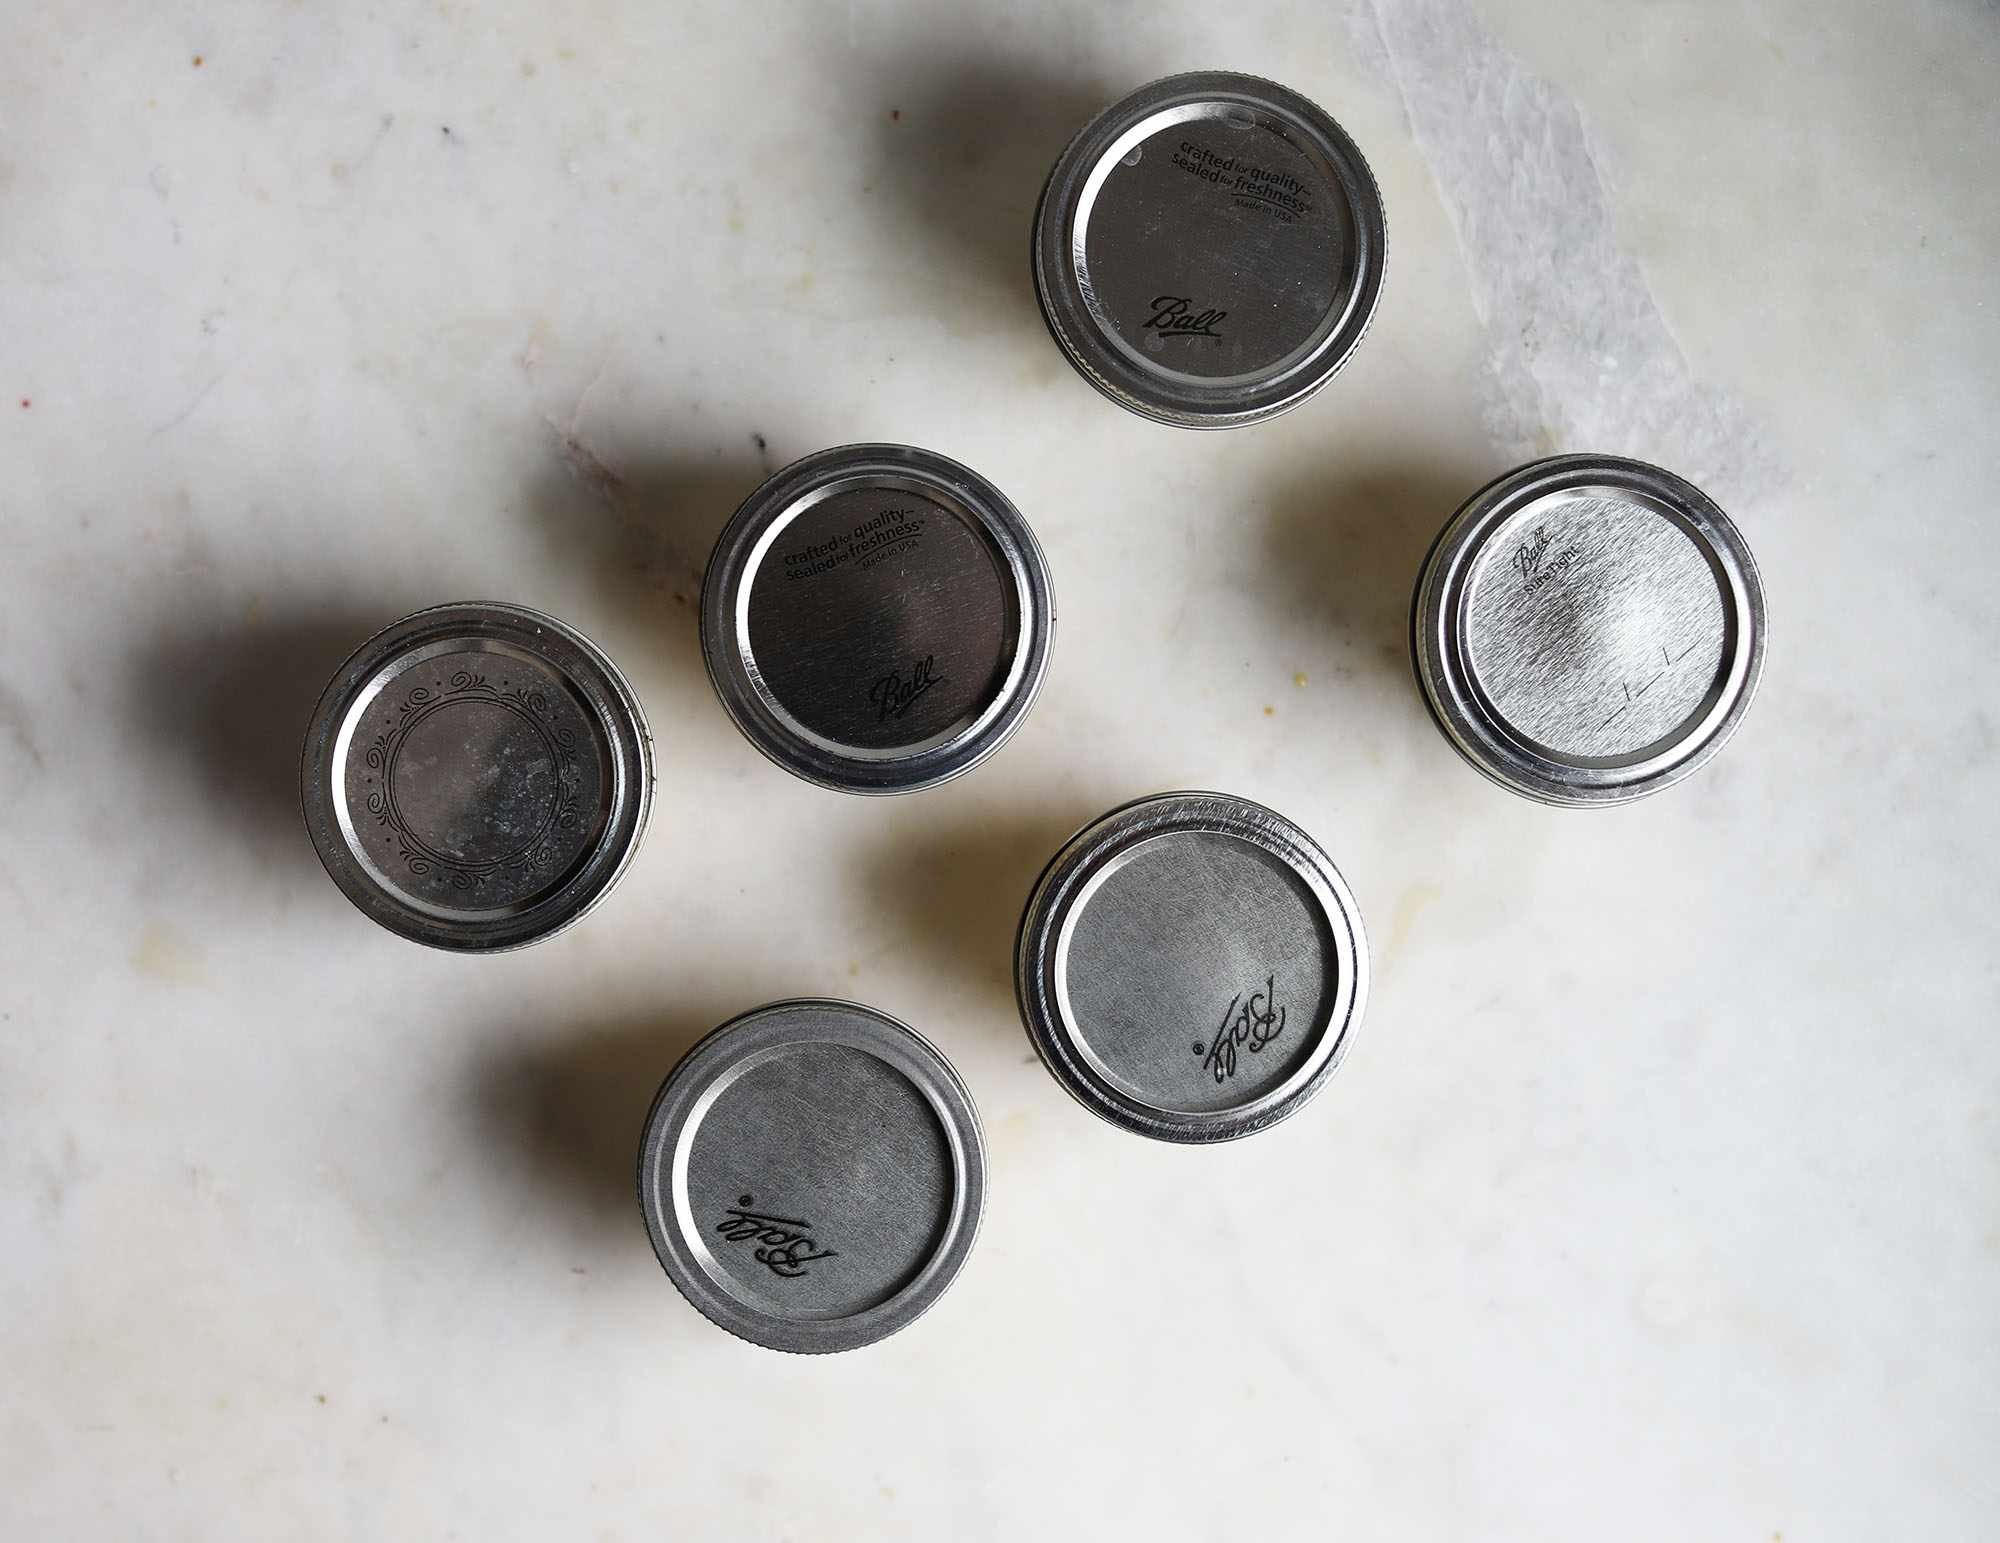 jars with lids closed